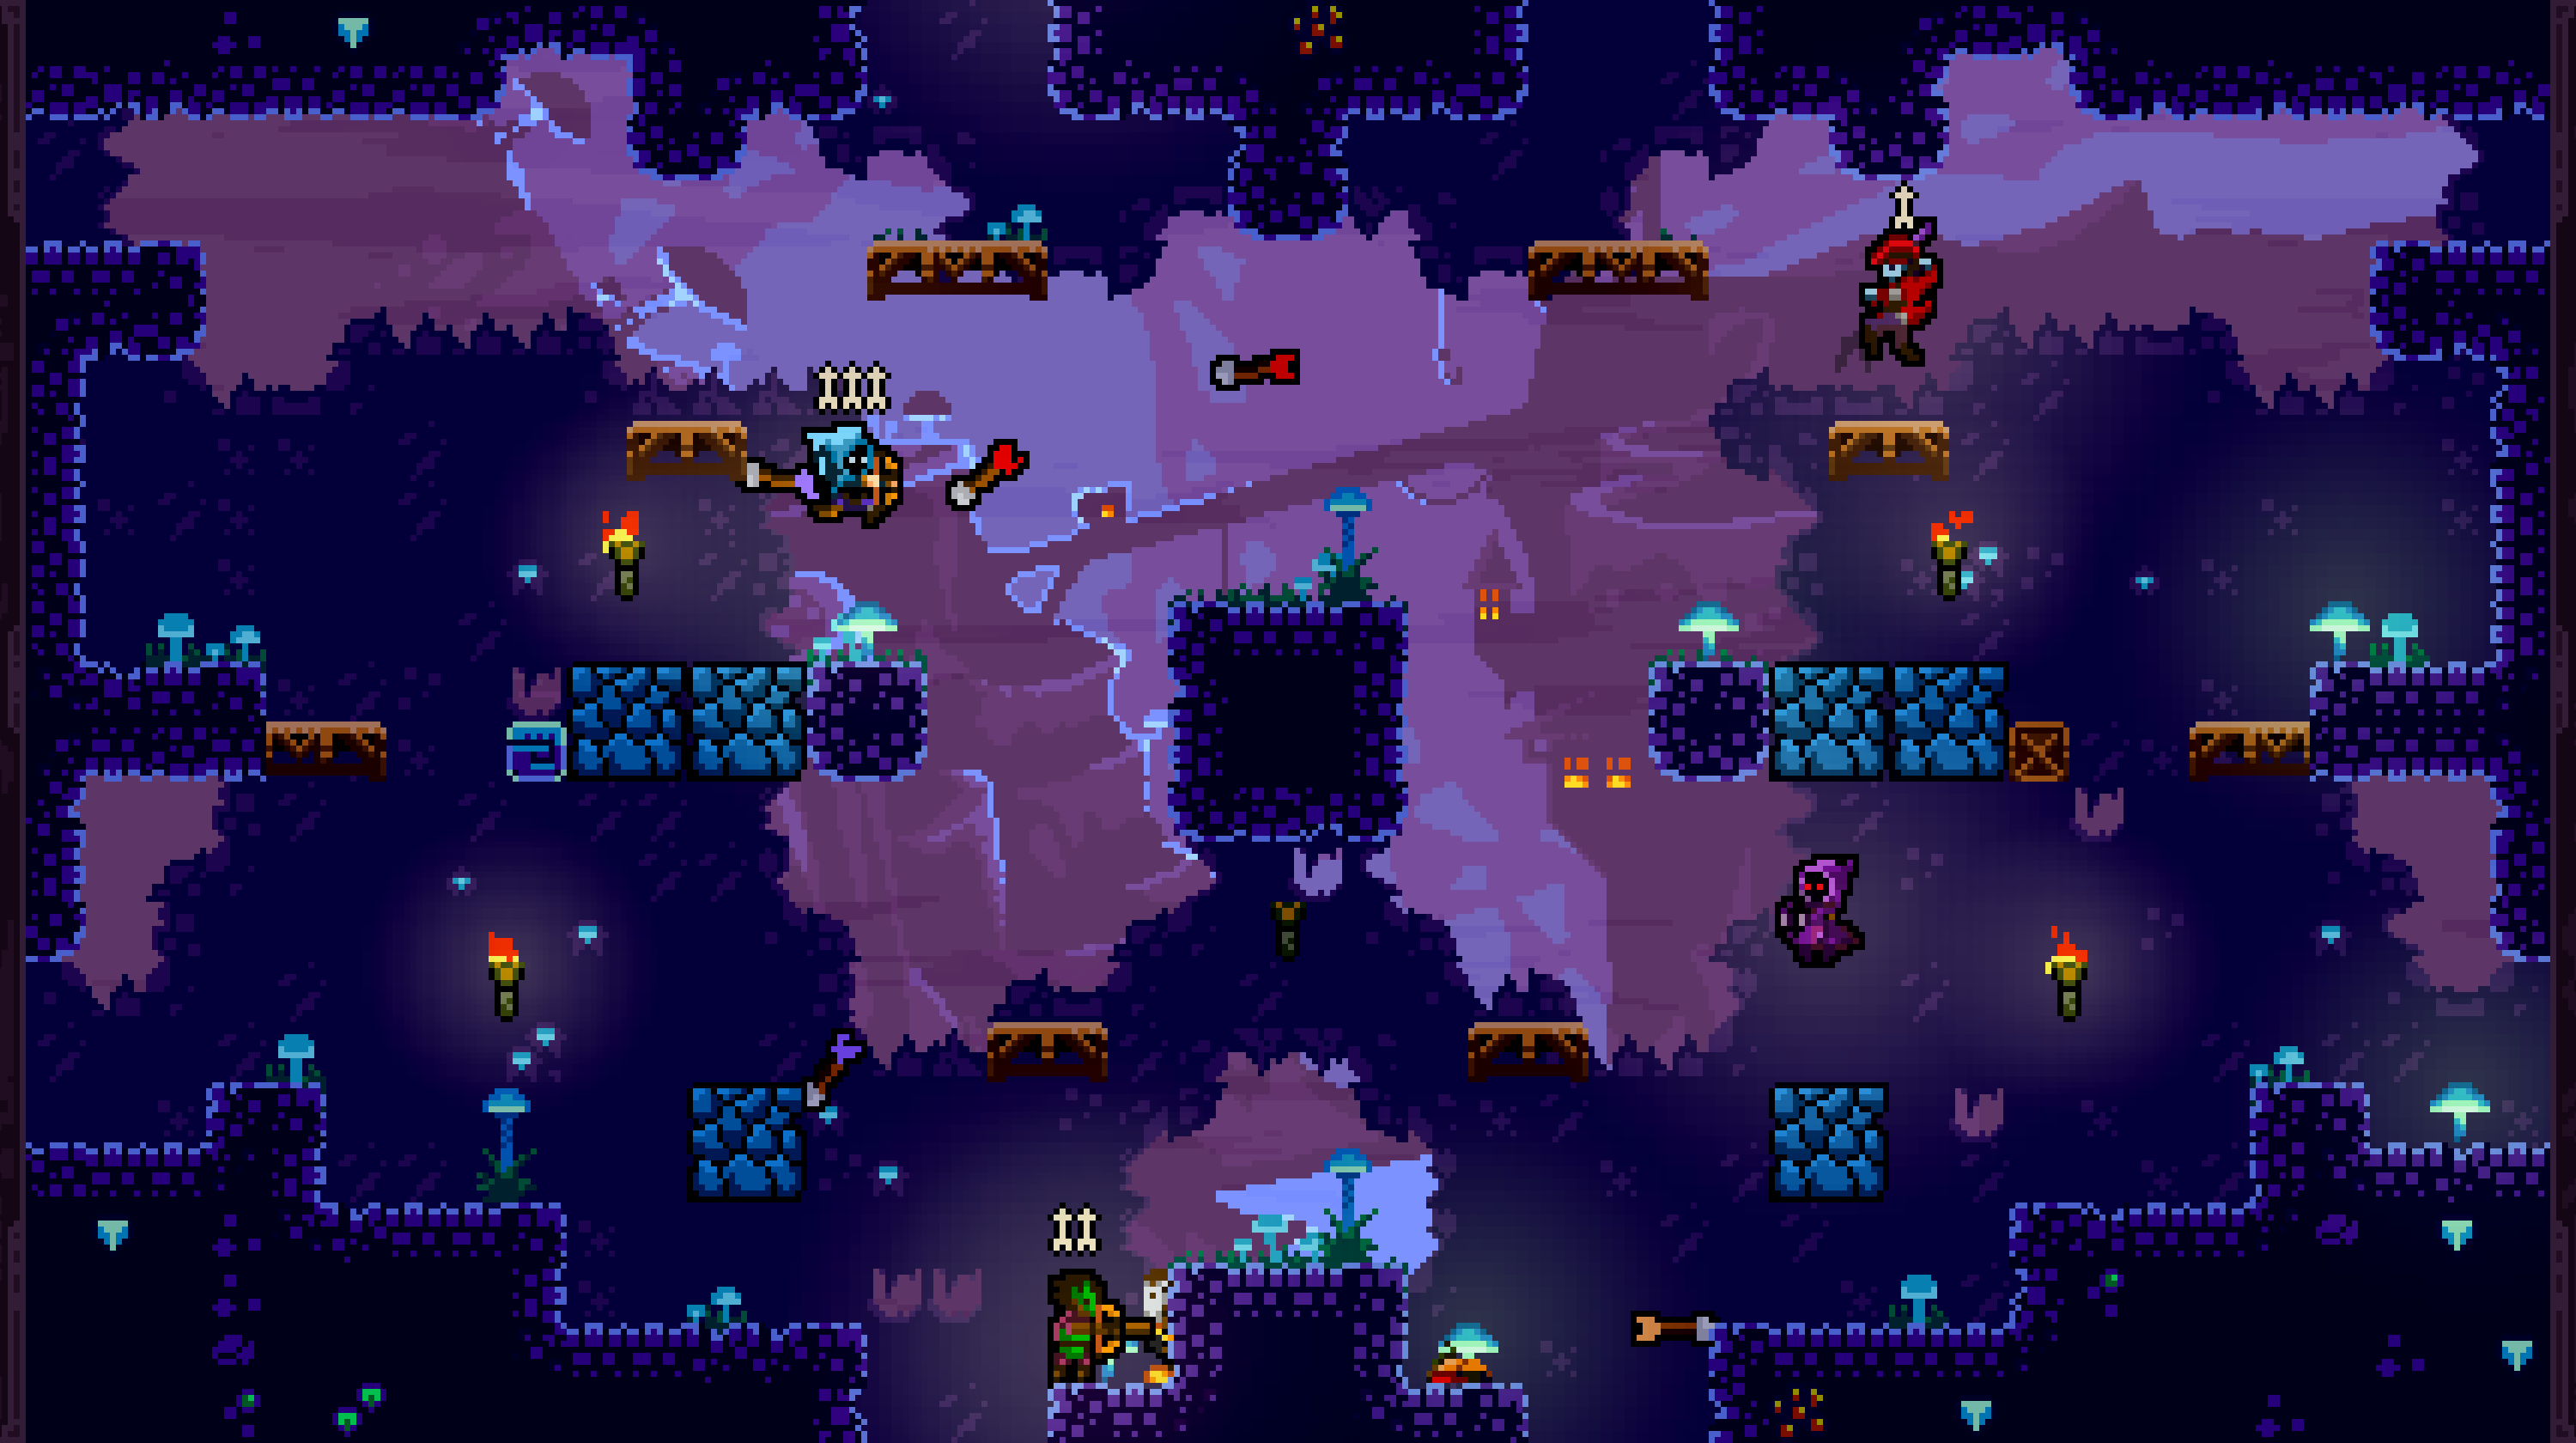 Towerfall 8 players